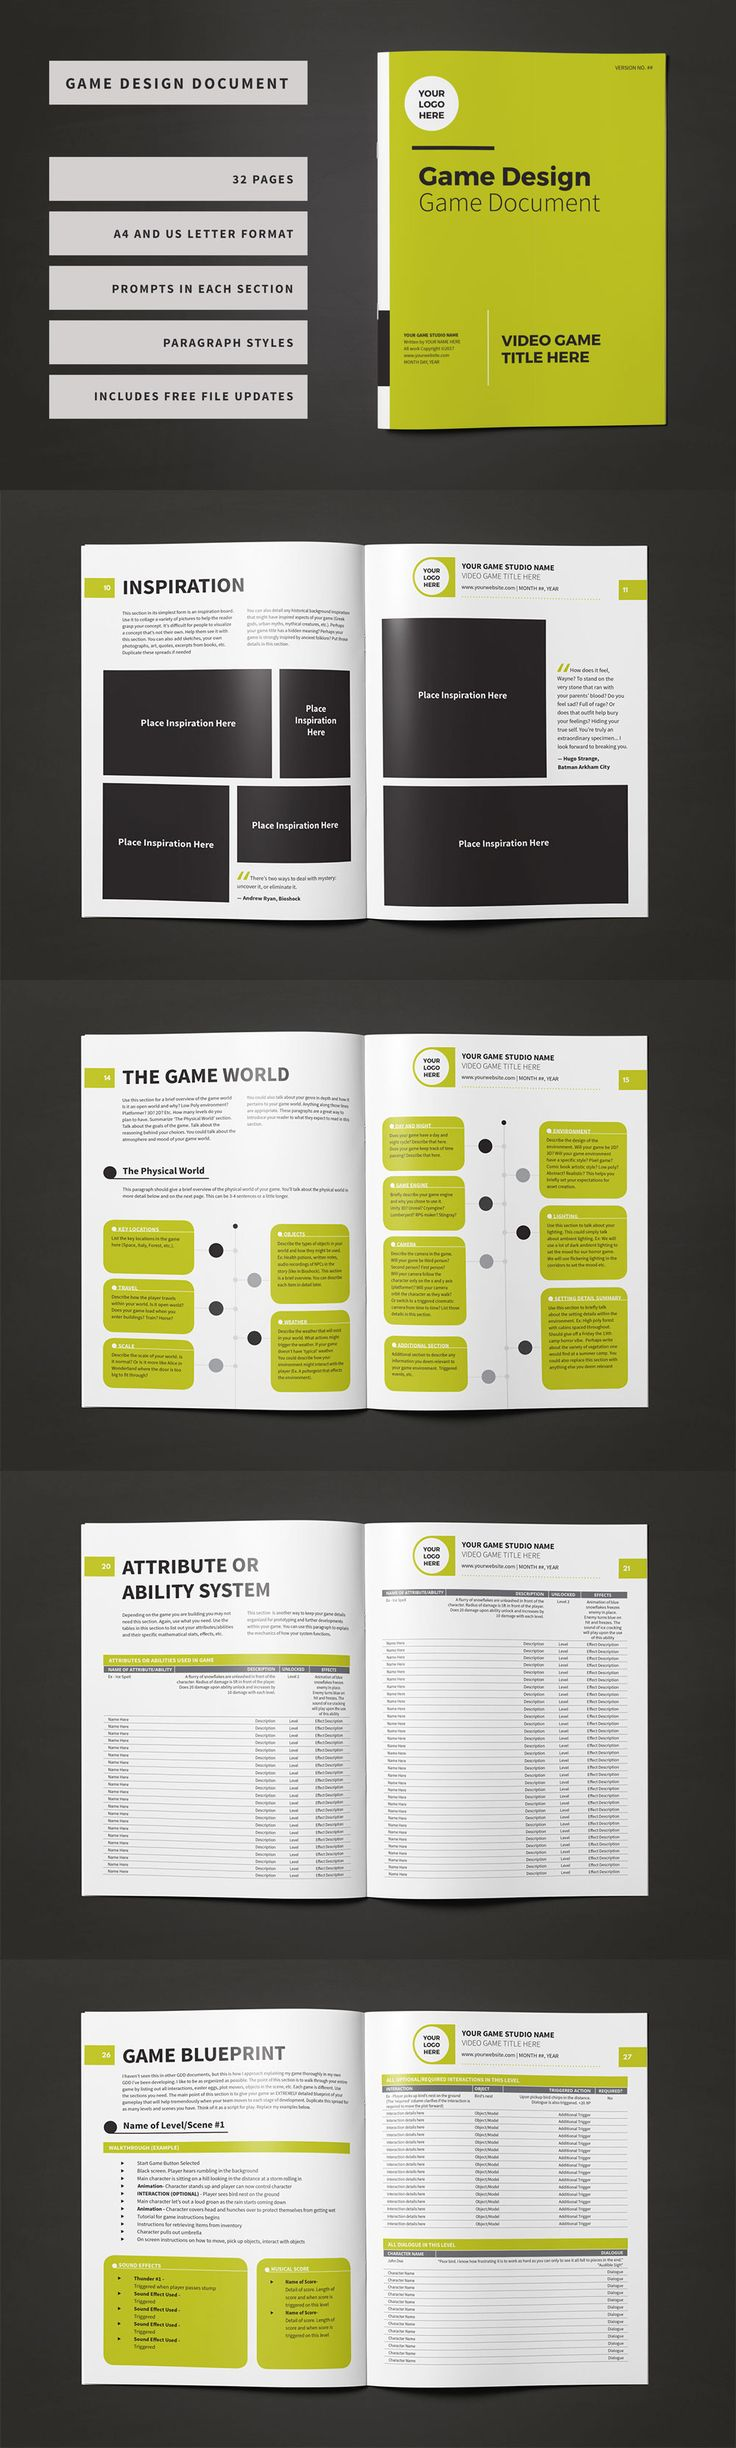 Professionally designed 32 page Game Design Document available for download!